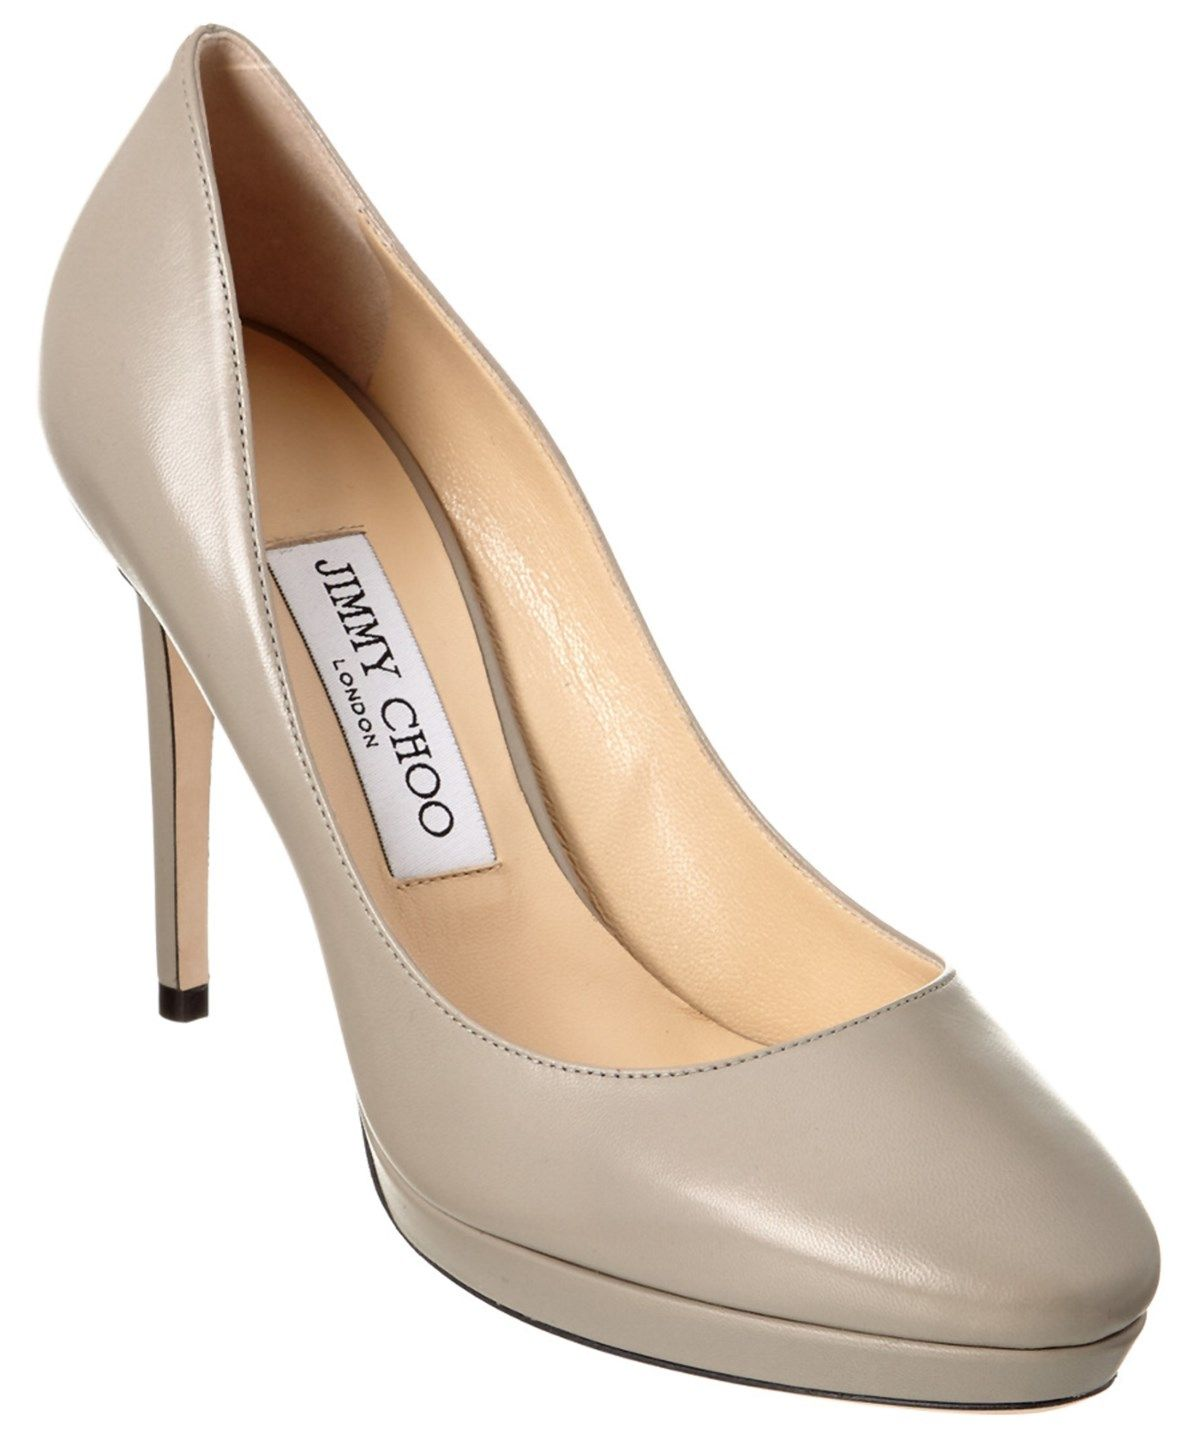 bcad77329cf7 JIMMY CHOO JIMMY CHOO HOPE 100 KID LEATHER PETITE LATFORM PUMP .  jimmychoo   shoes  pumps   high heels